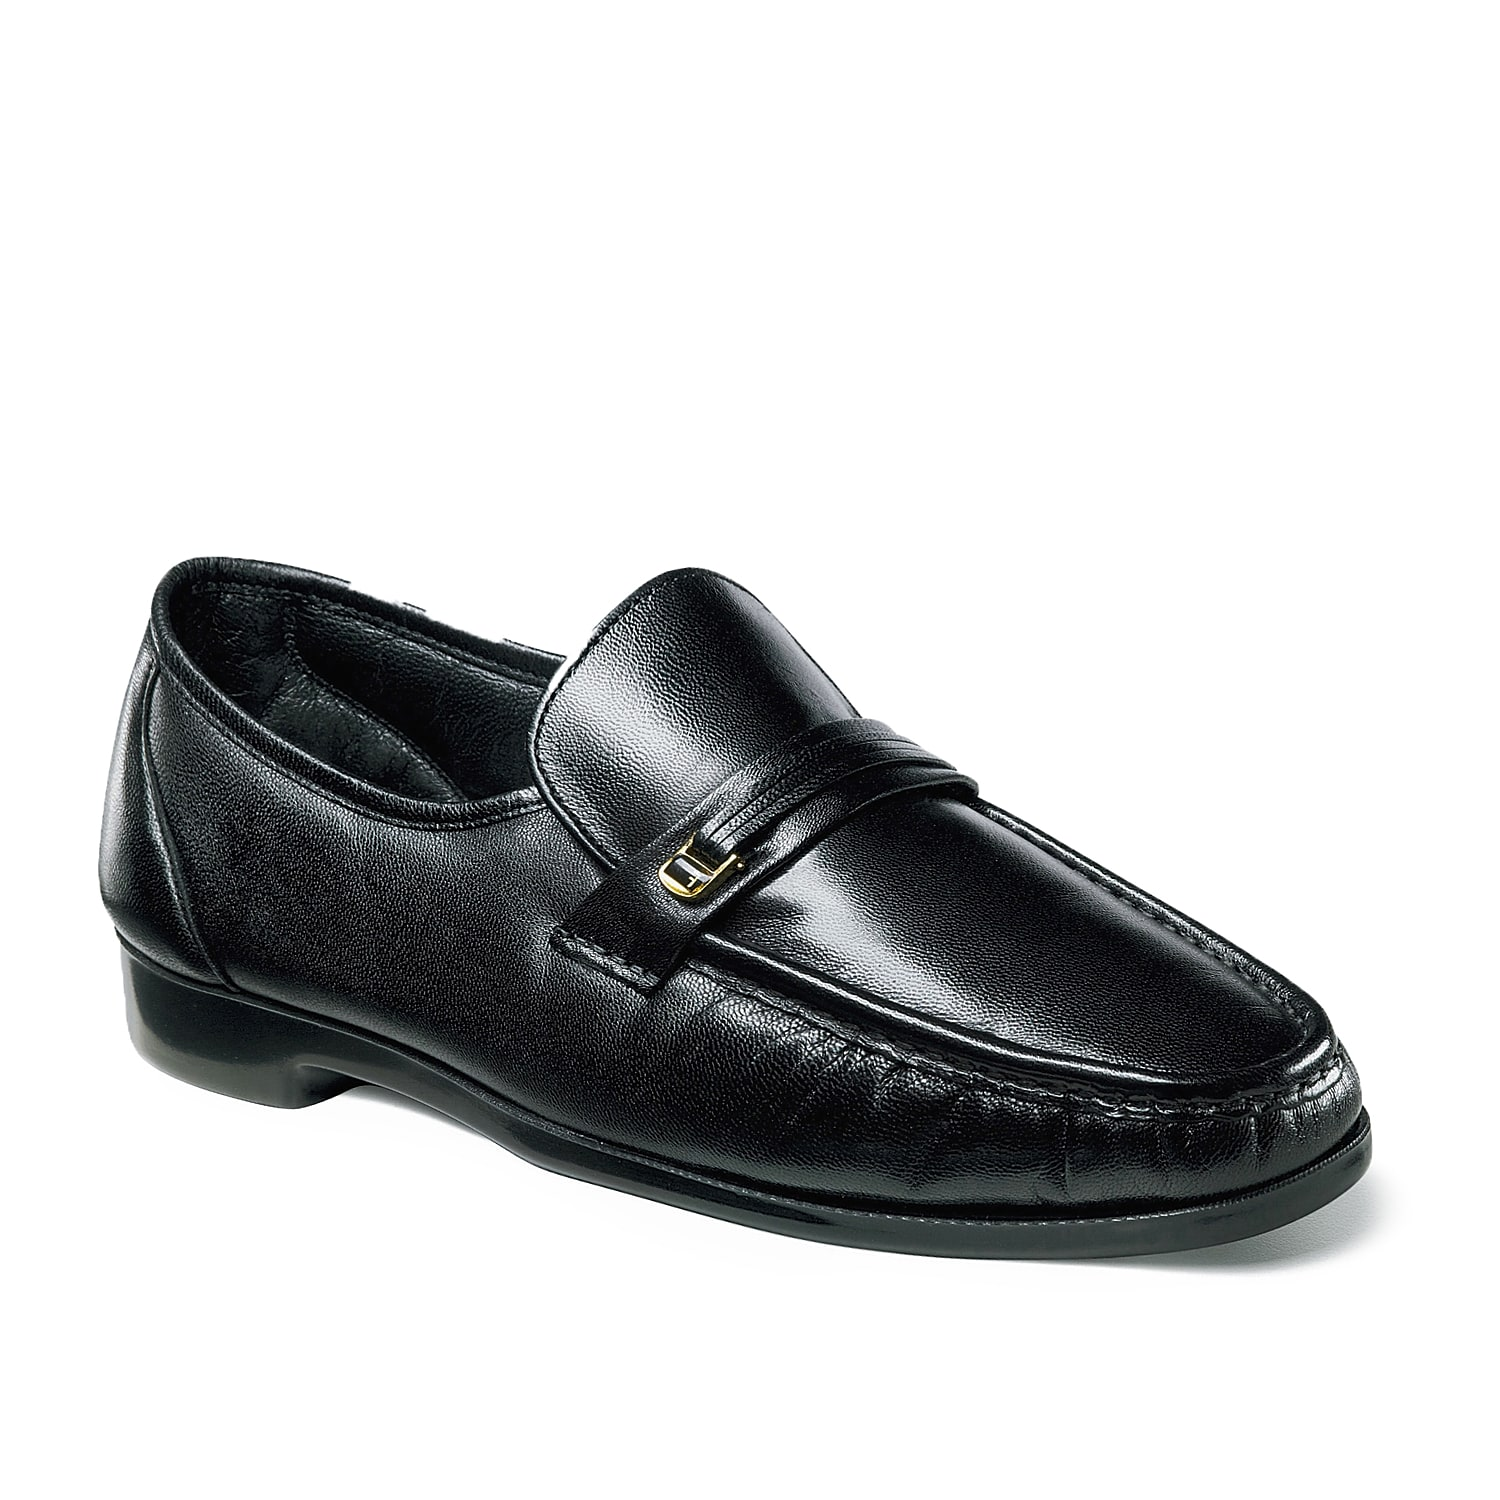 The Florsheim Riva is a classic dress shoe that features a hidden gore made with genuine hand sewn construction for a comfortable, easy slip-on fit. A decorative strap and metal accent completes this loafer, giving it a clean finish and classic look.